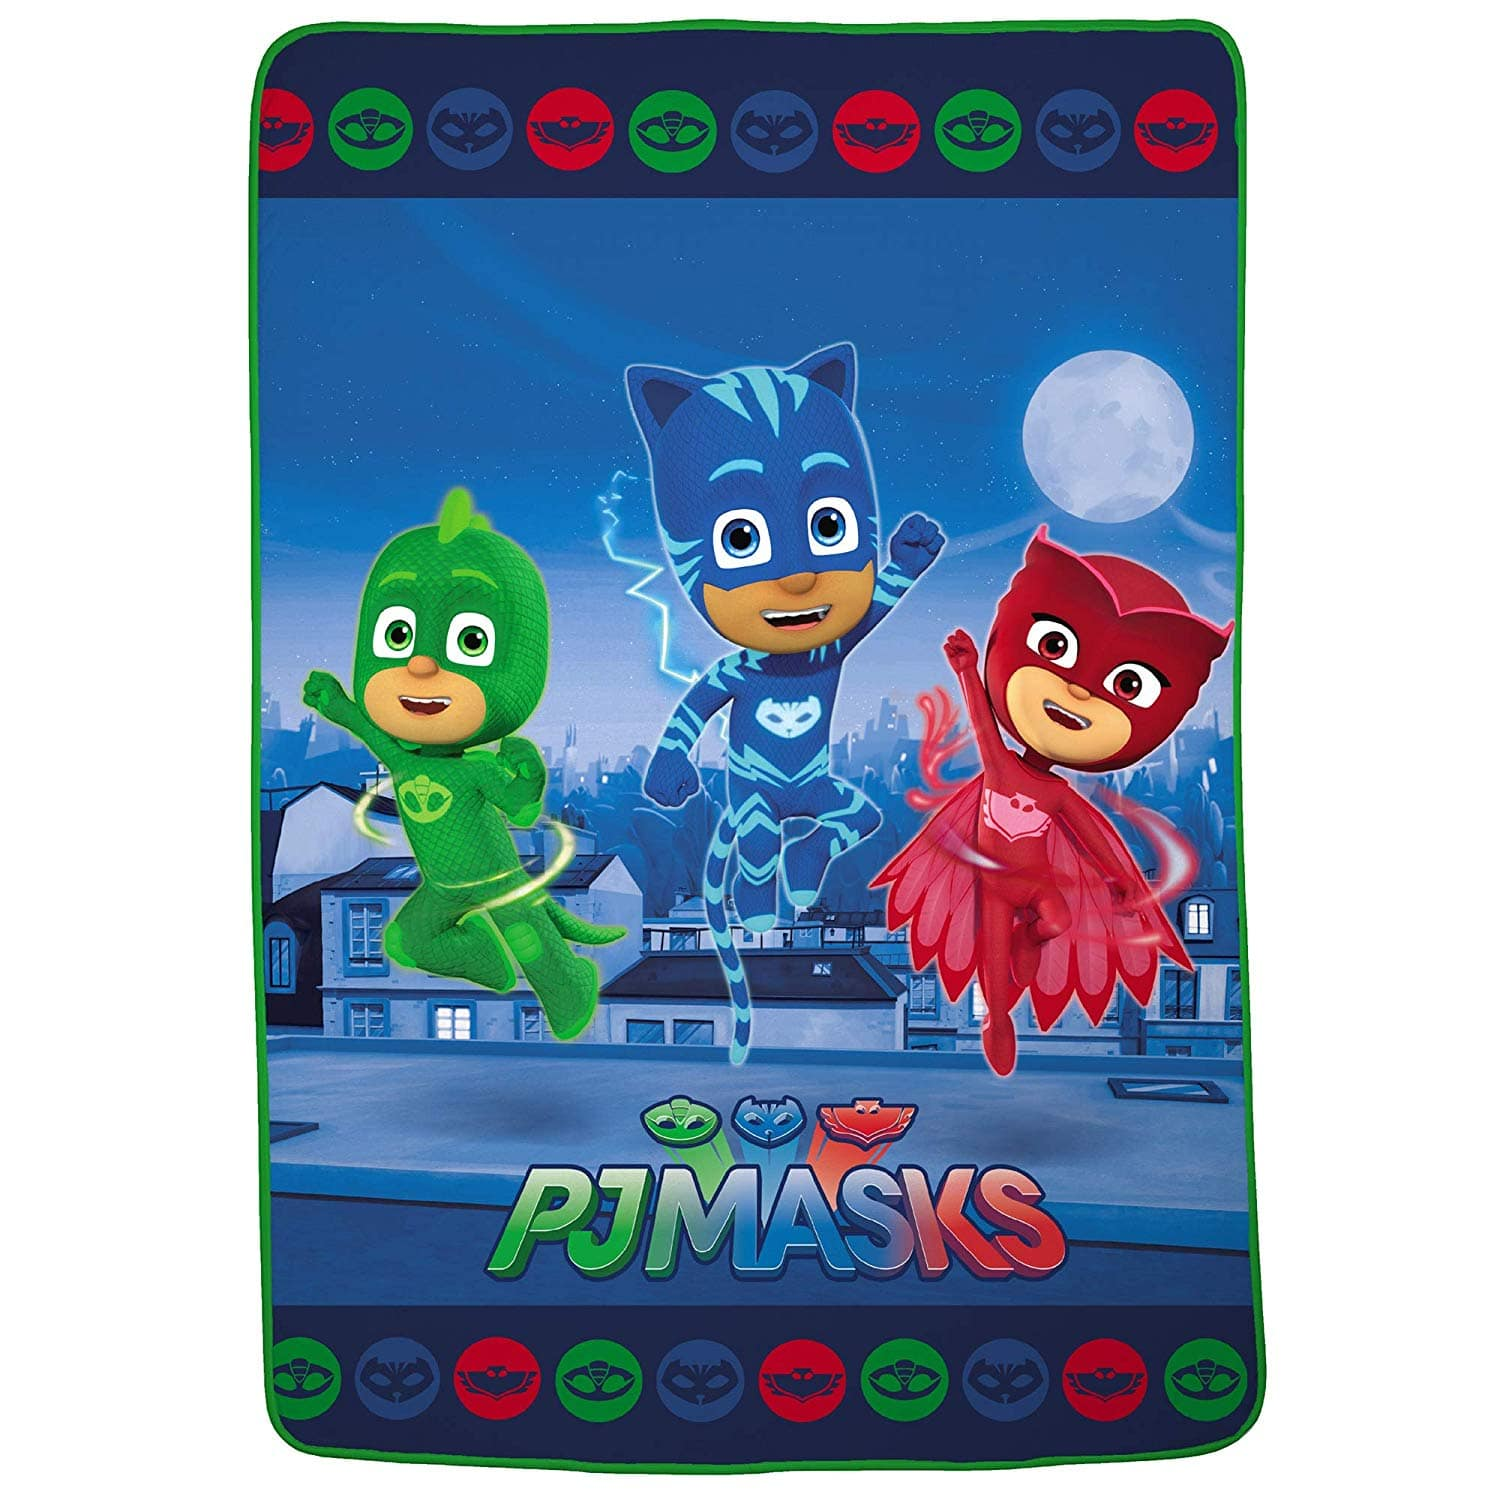 """PJ Masks Super Soft Plush Blanket Twin/Full Size 62"""" x 90"""" $13.49 with F/S with Amazon Prime or Target Circle"""